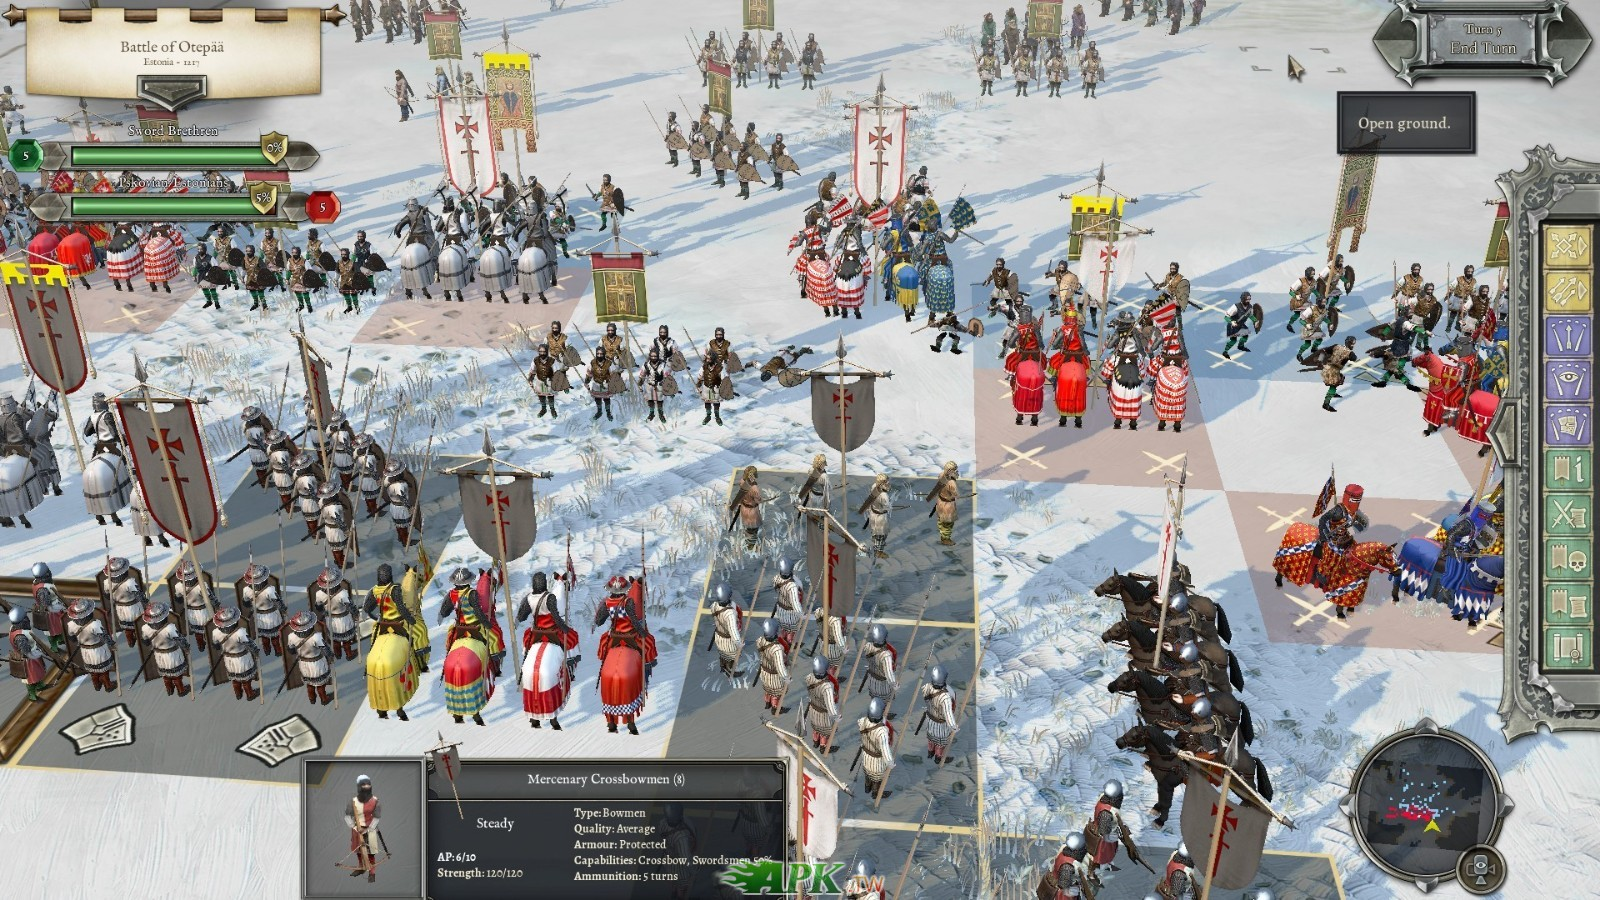 field-of-glory-2-medieval-review-snow-battle-otepaa-ingame-unit-squares-screenshot.jpg